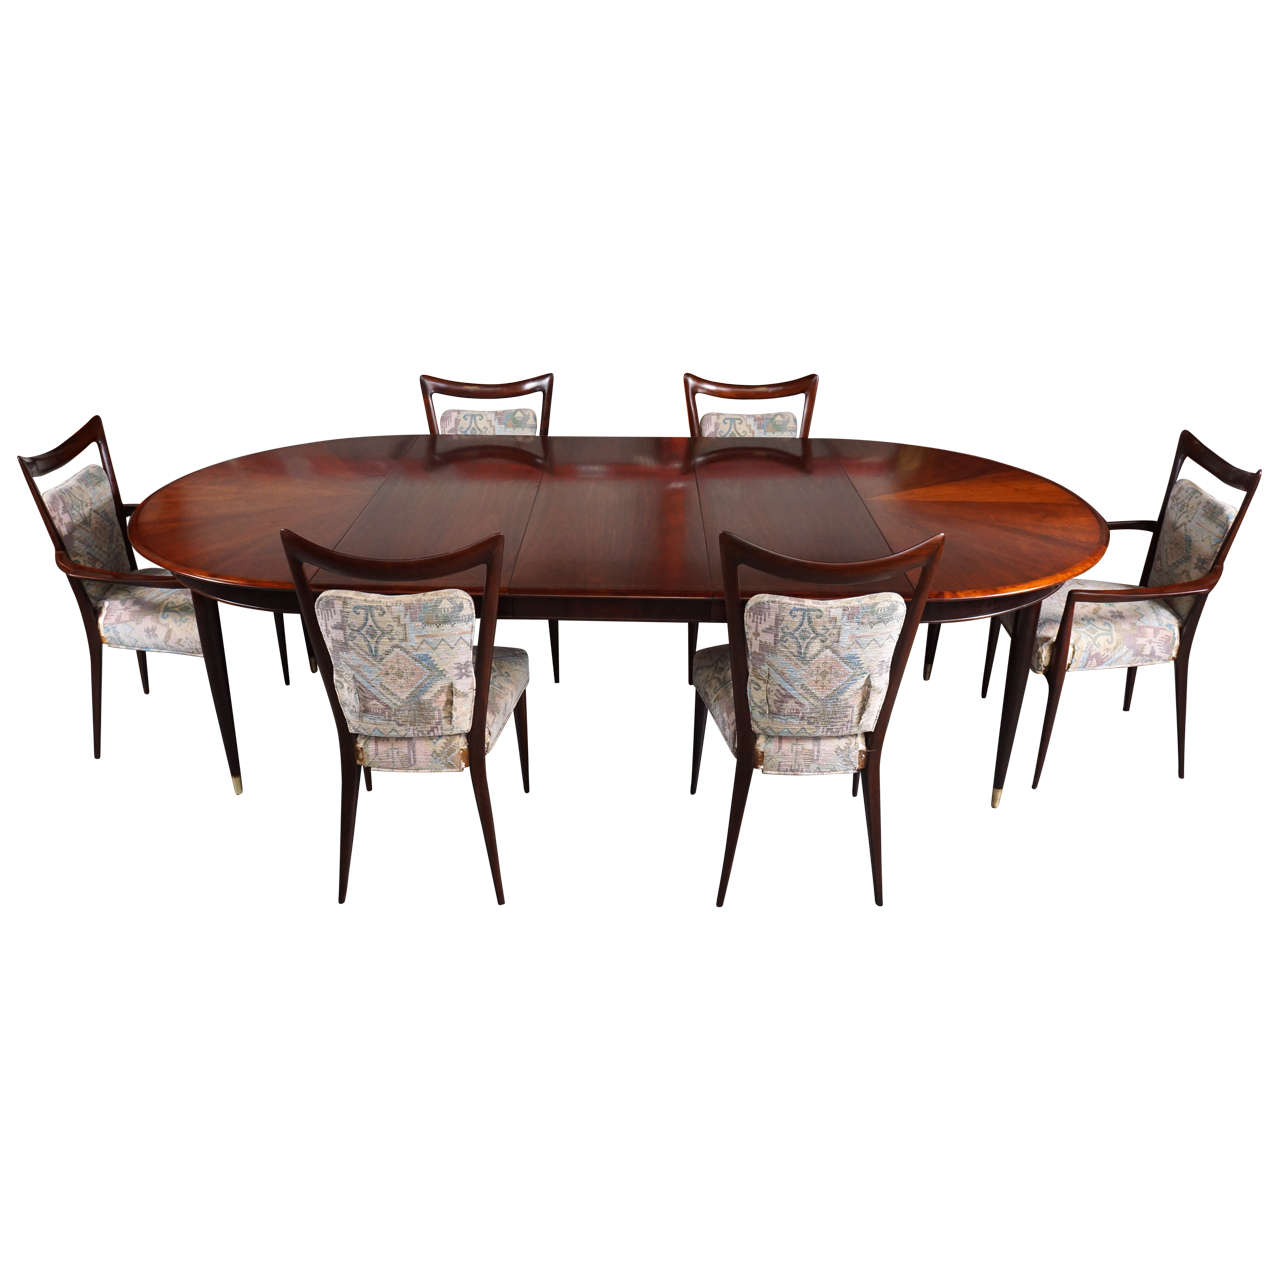 Melchiorre Bega Mahogany Dining Set 10 Chairs Table With Three Leaves Italy 1